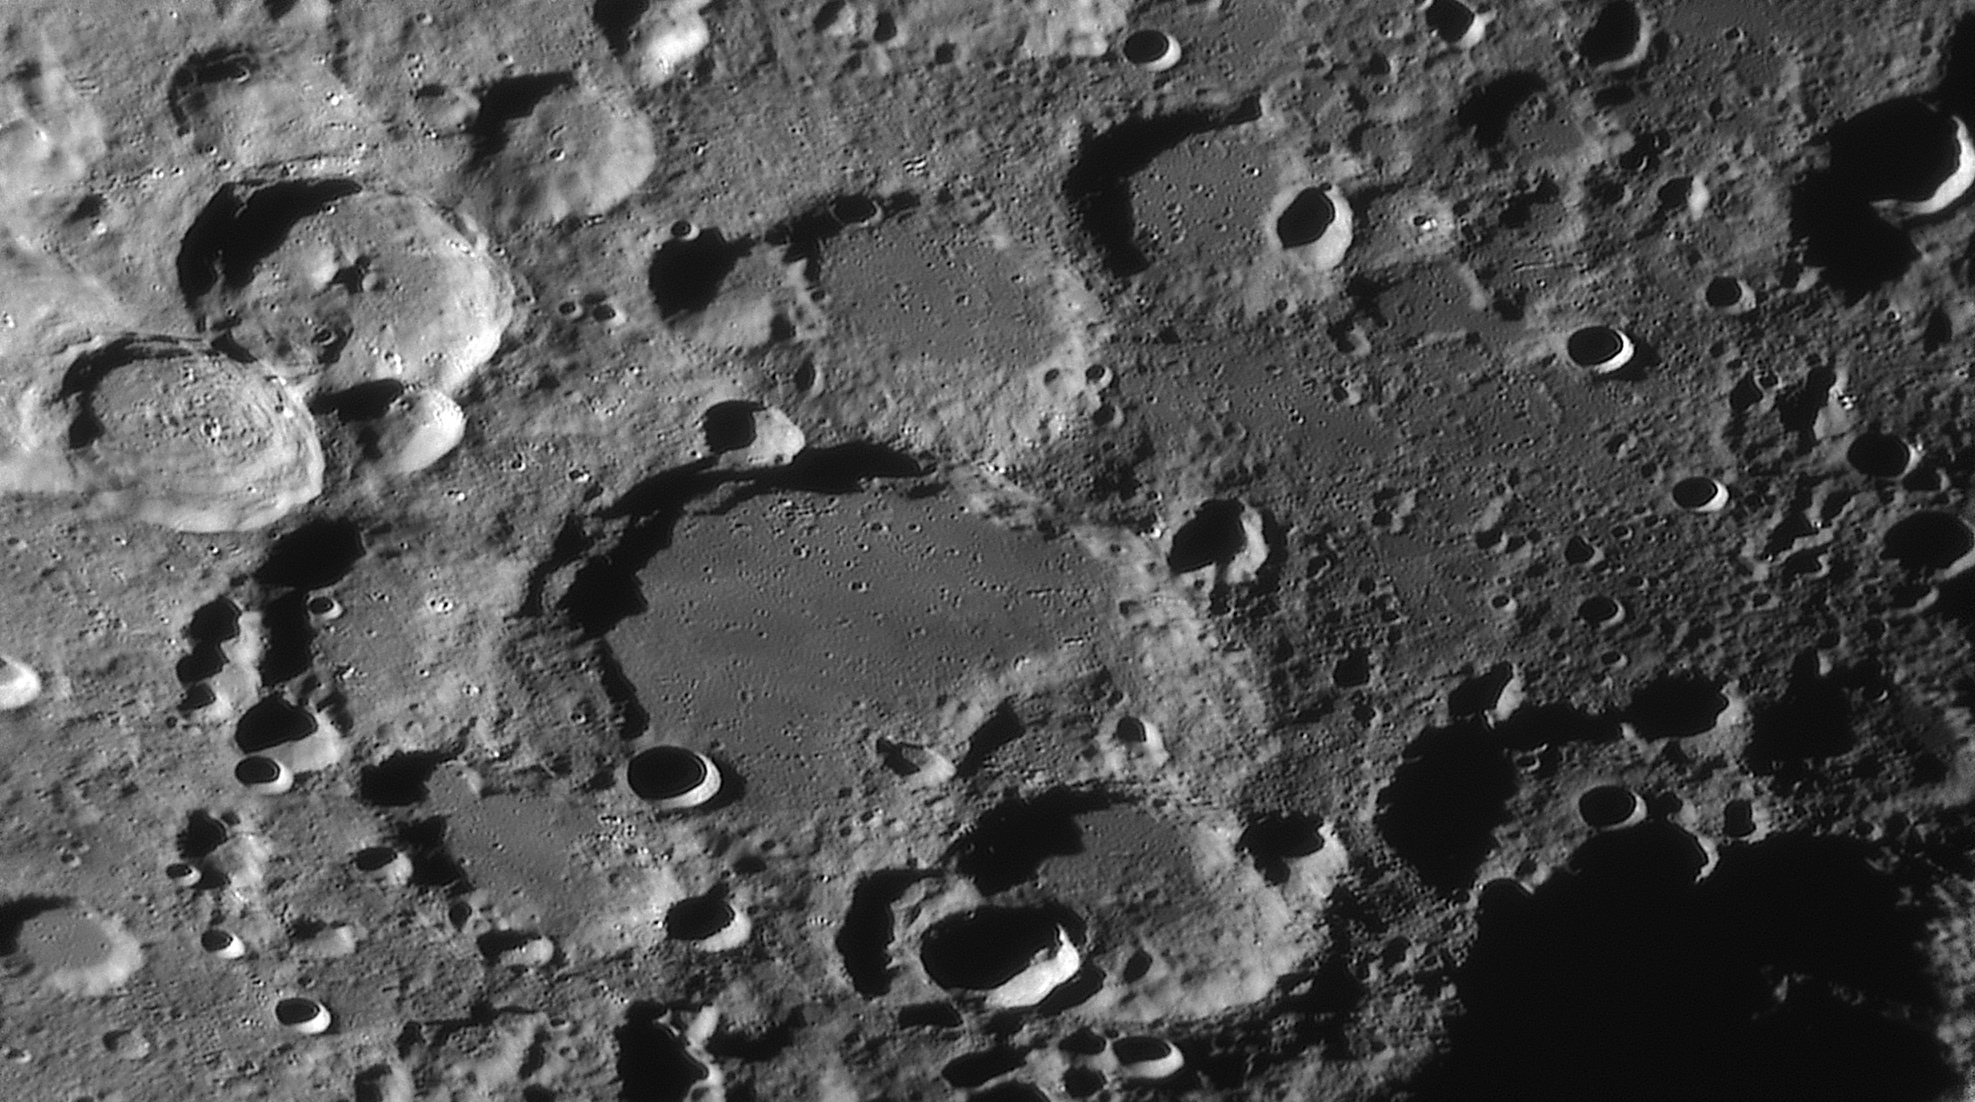 large.moon_23_07_2019_04_18_53_STOFLER.jpg.3ed65ac3b330c70be53569bb64f9d68a.jpg